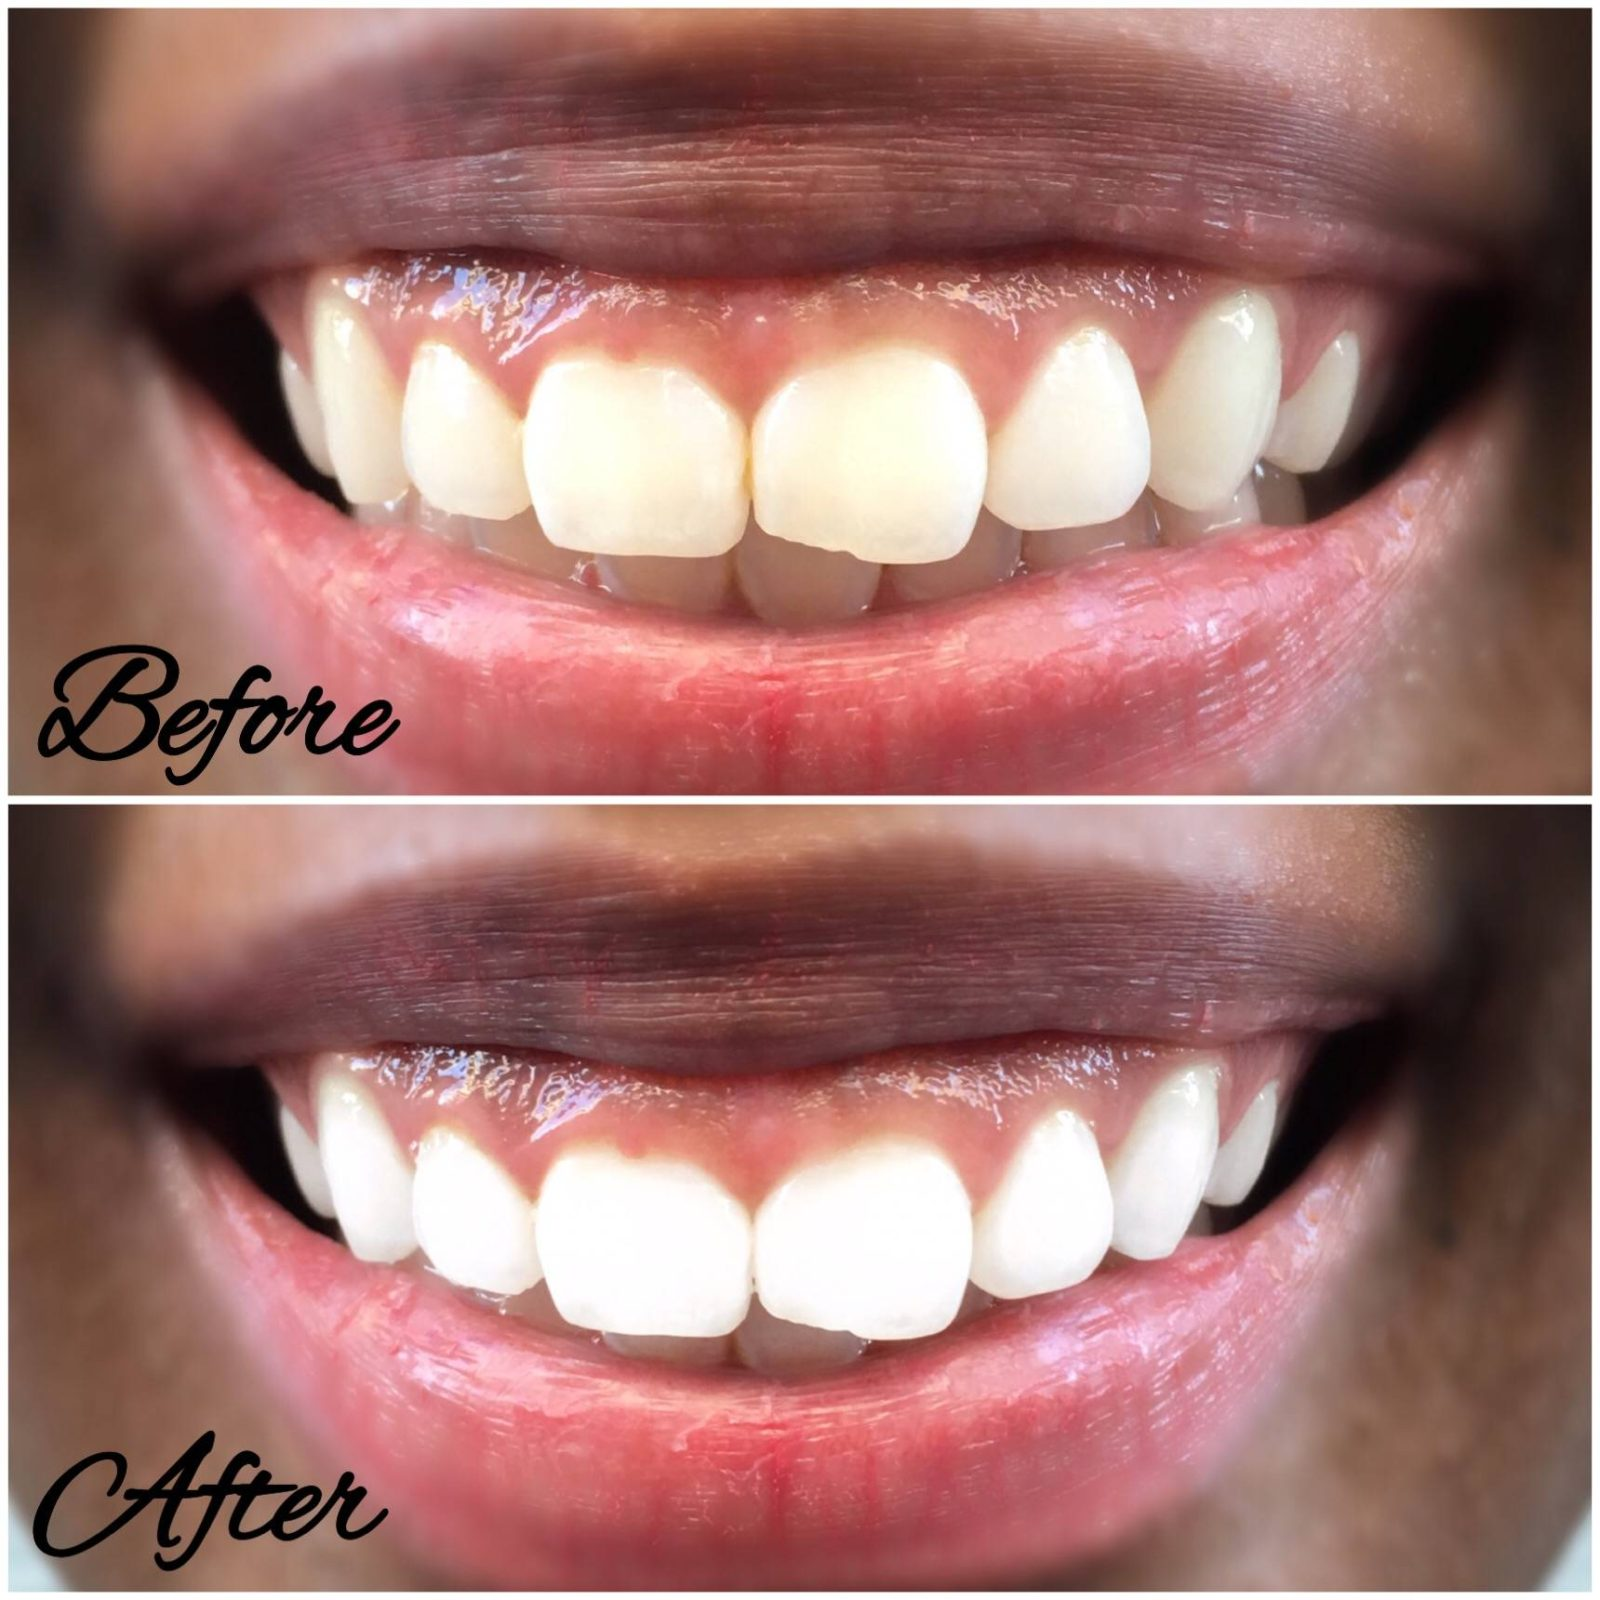 Home teeth whitening results- LeFabChic